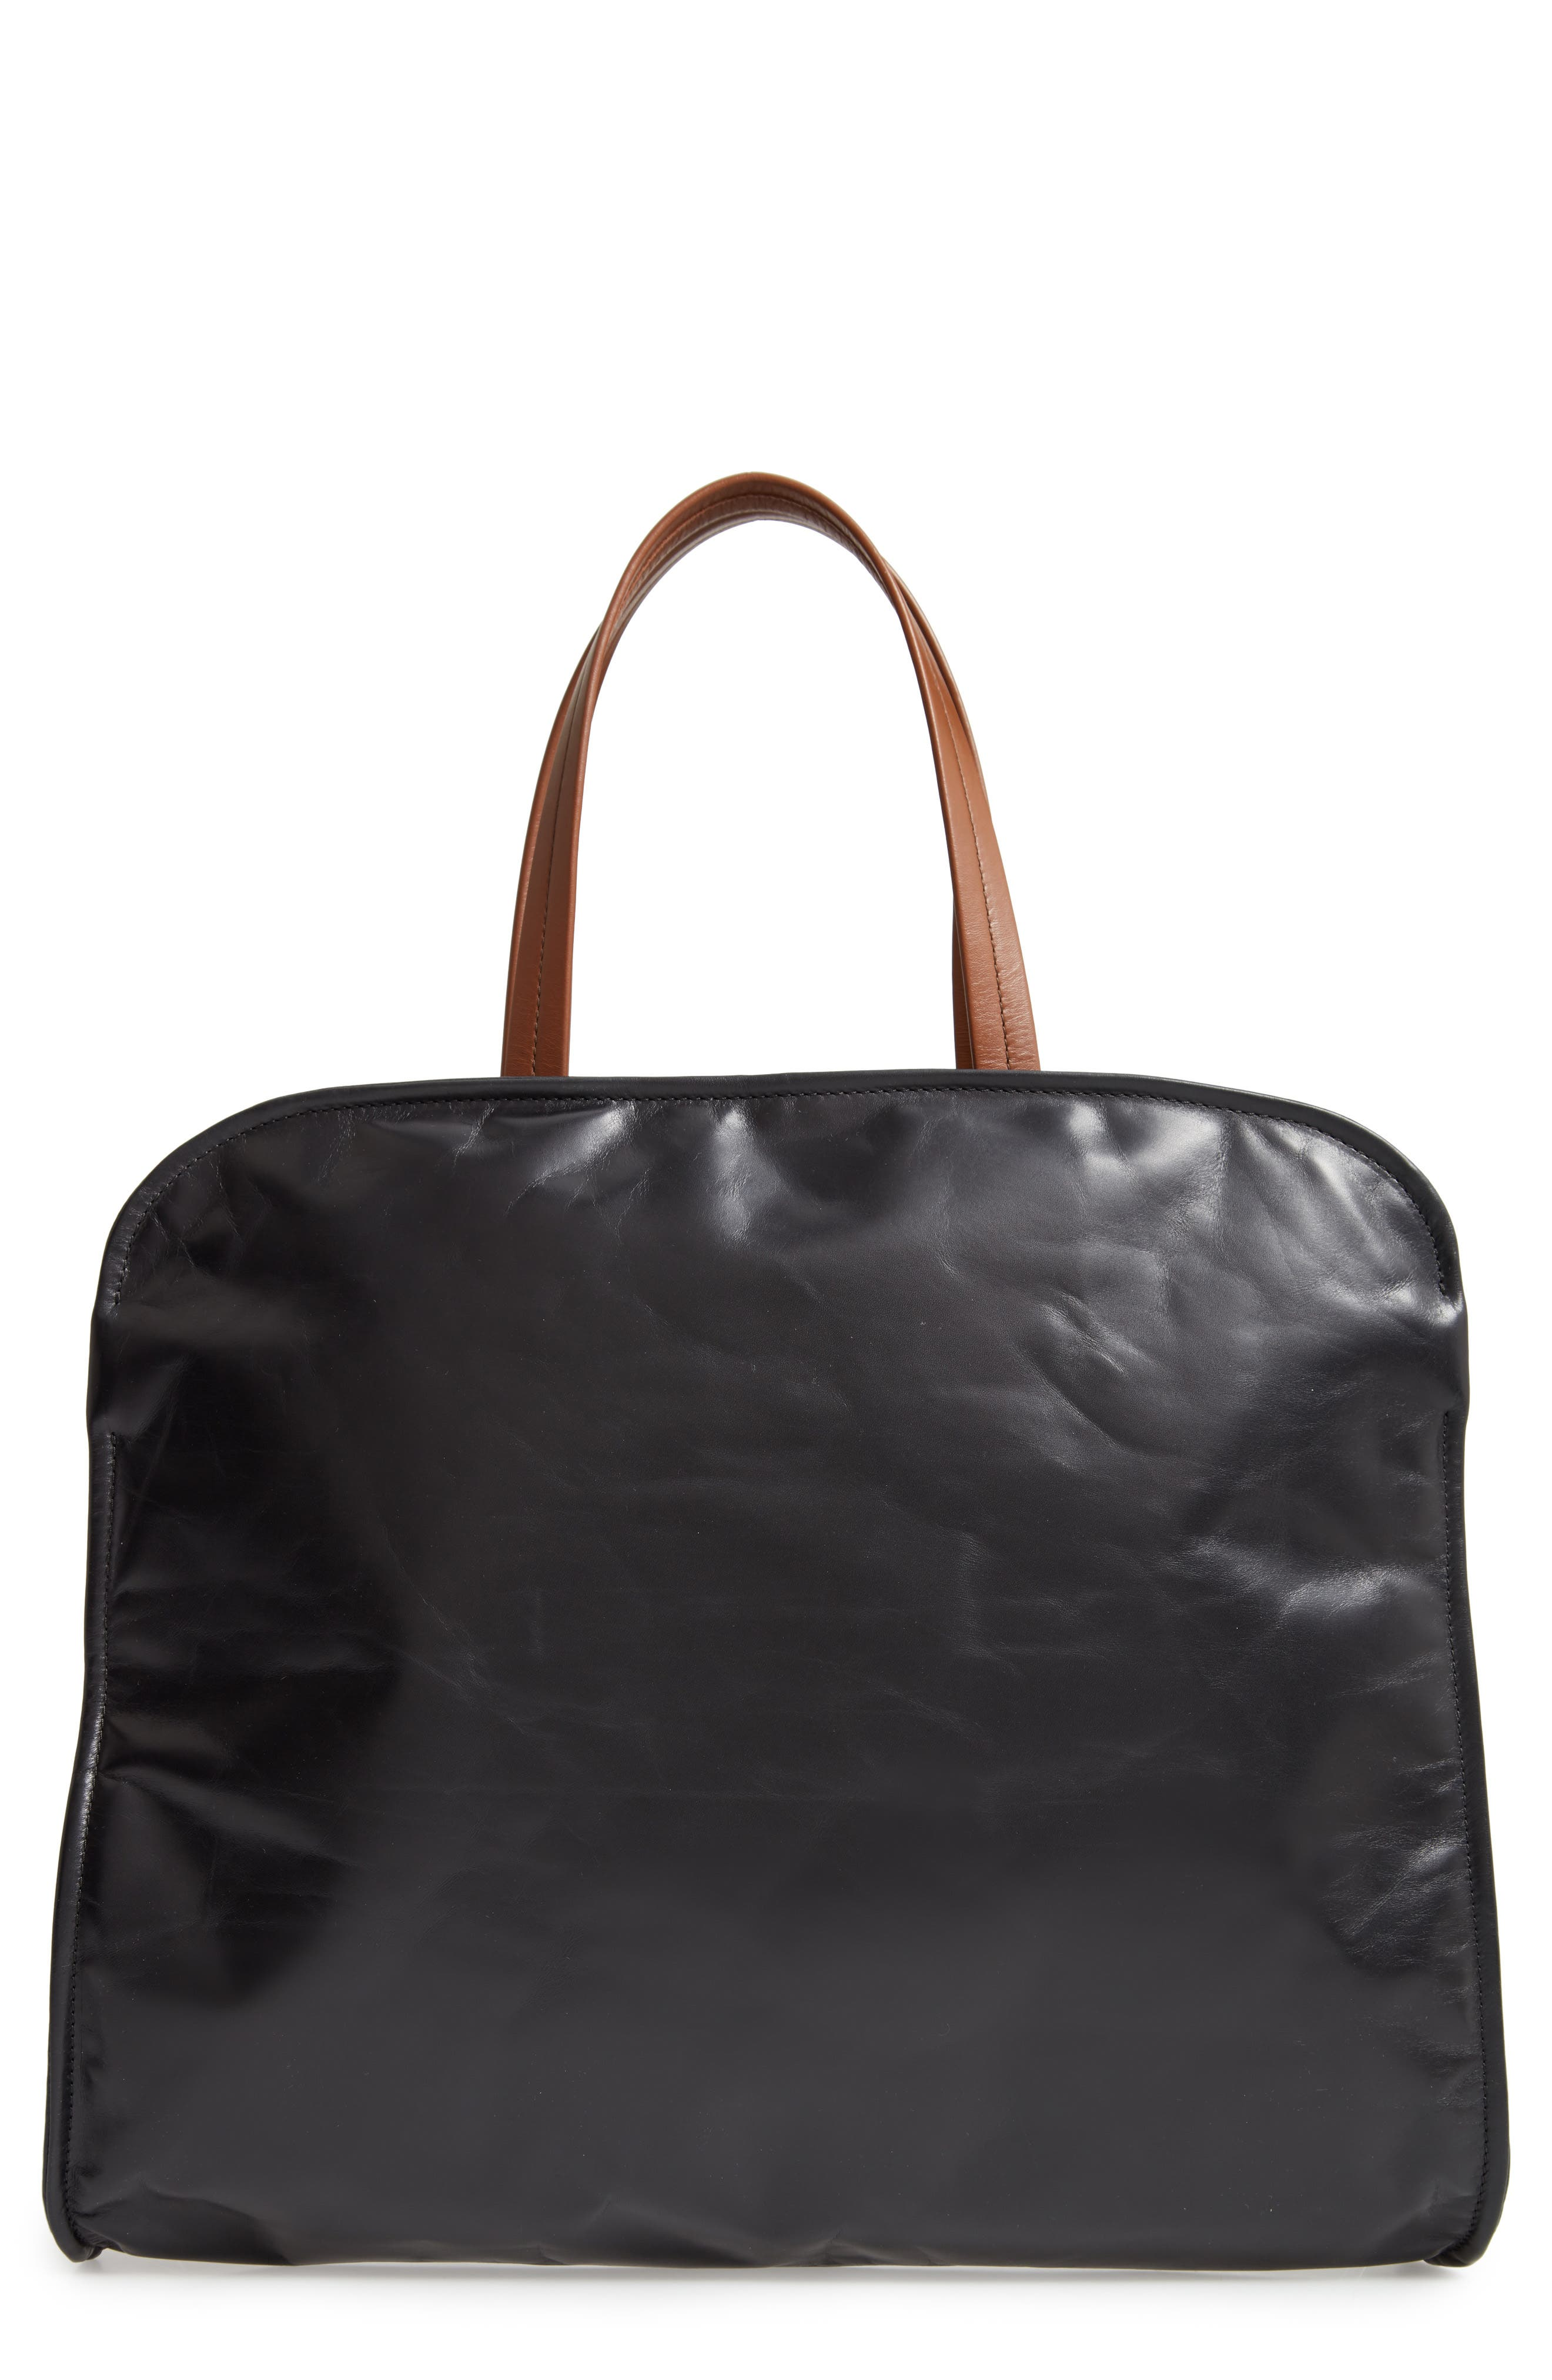 Cushion Leather Tote, Main, color, BLACK/ MAROON